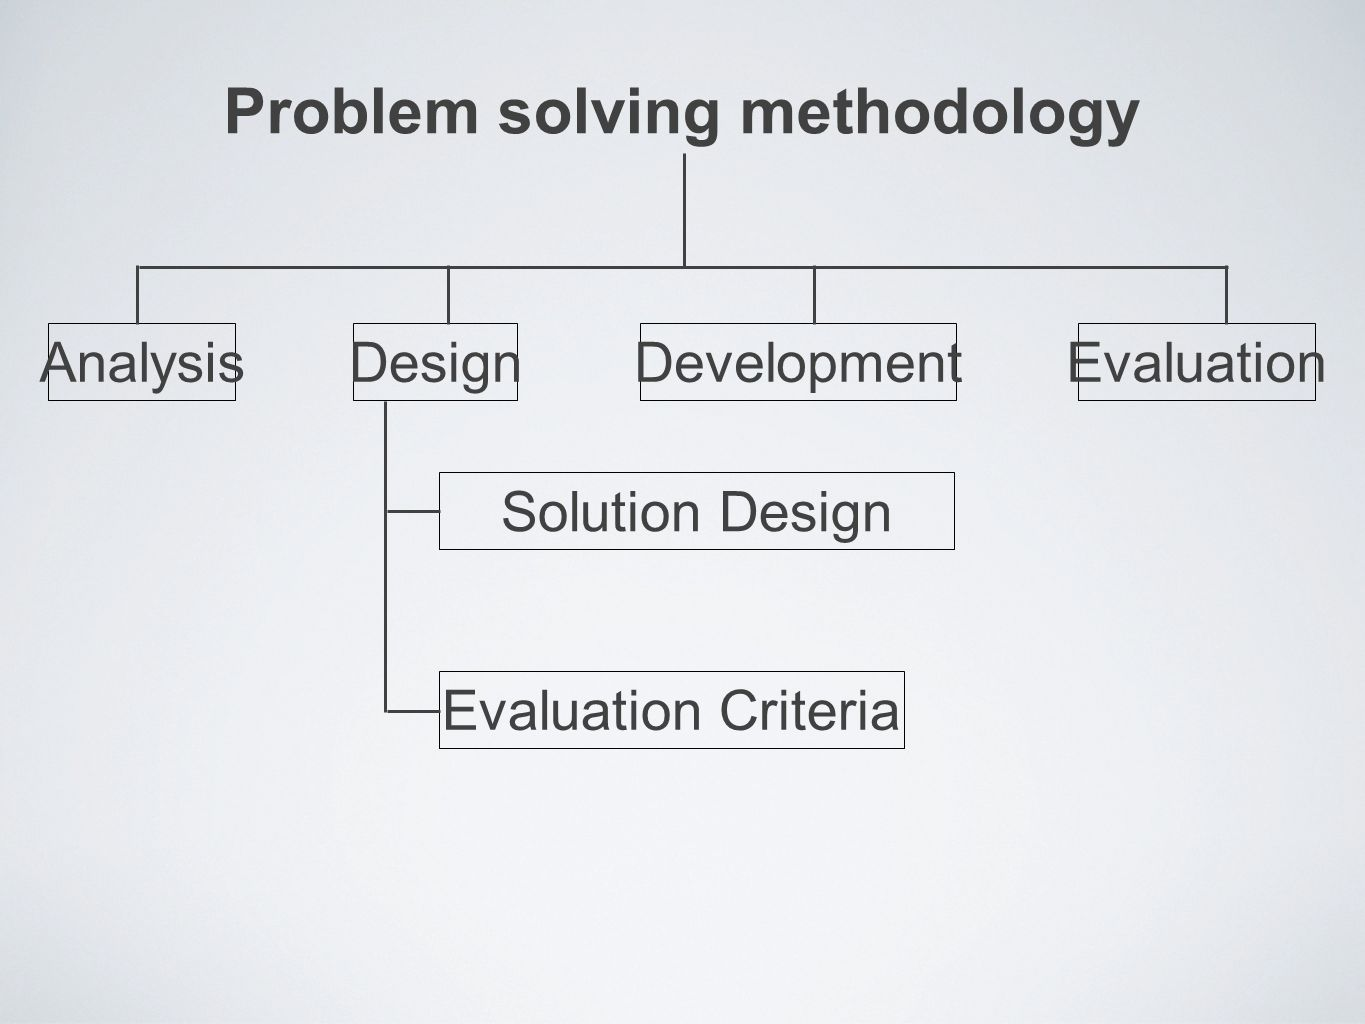 Problem solving methodology AnalysisDesignDevelopmentEvaluation Solution Design Evaluation Criteria